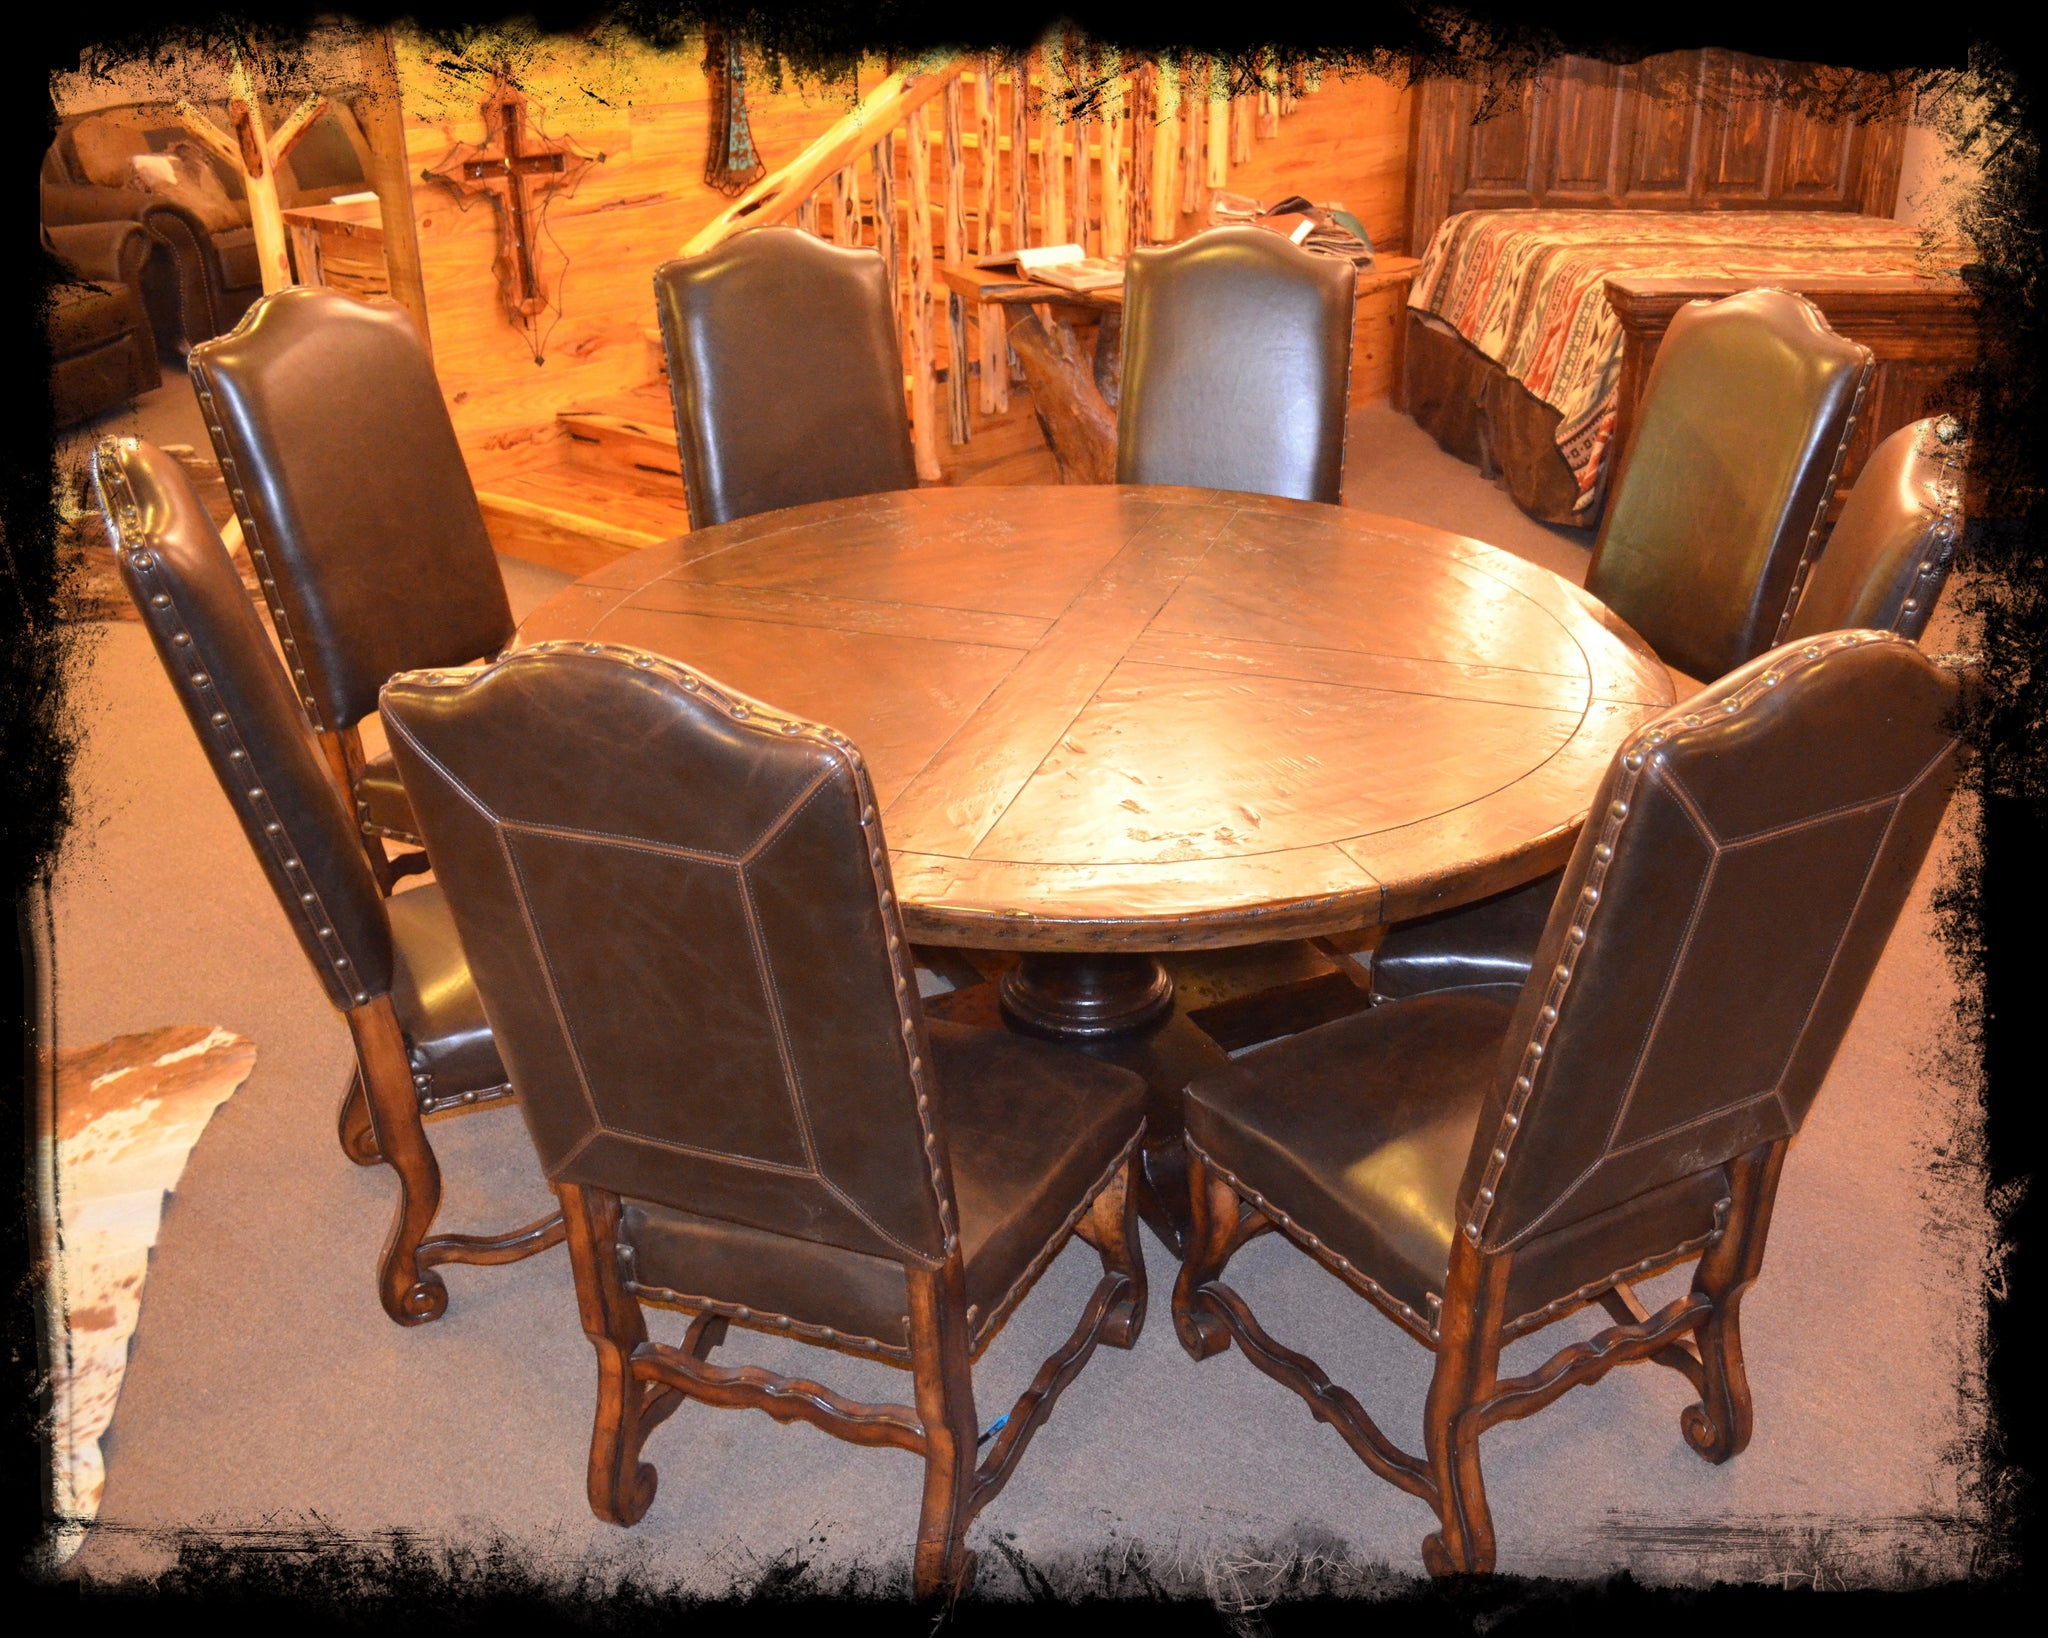 6u0027 Round Dining Table